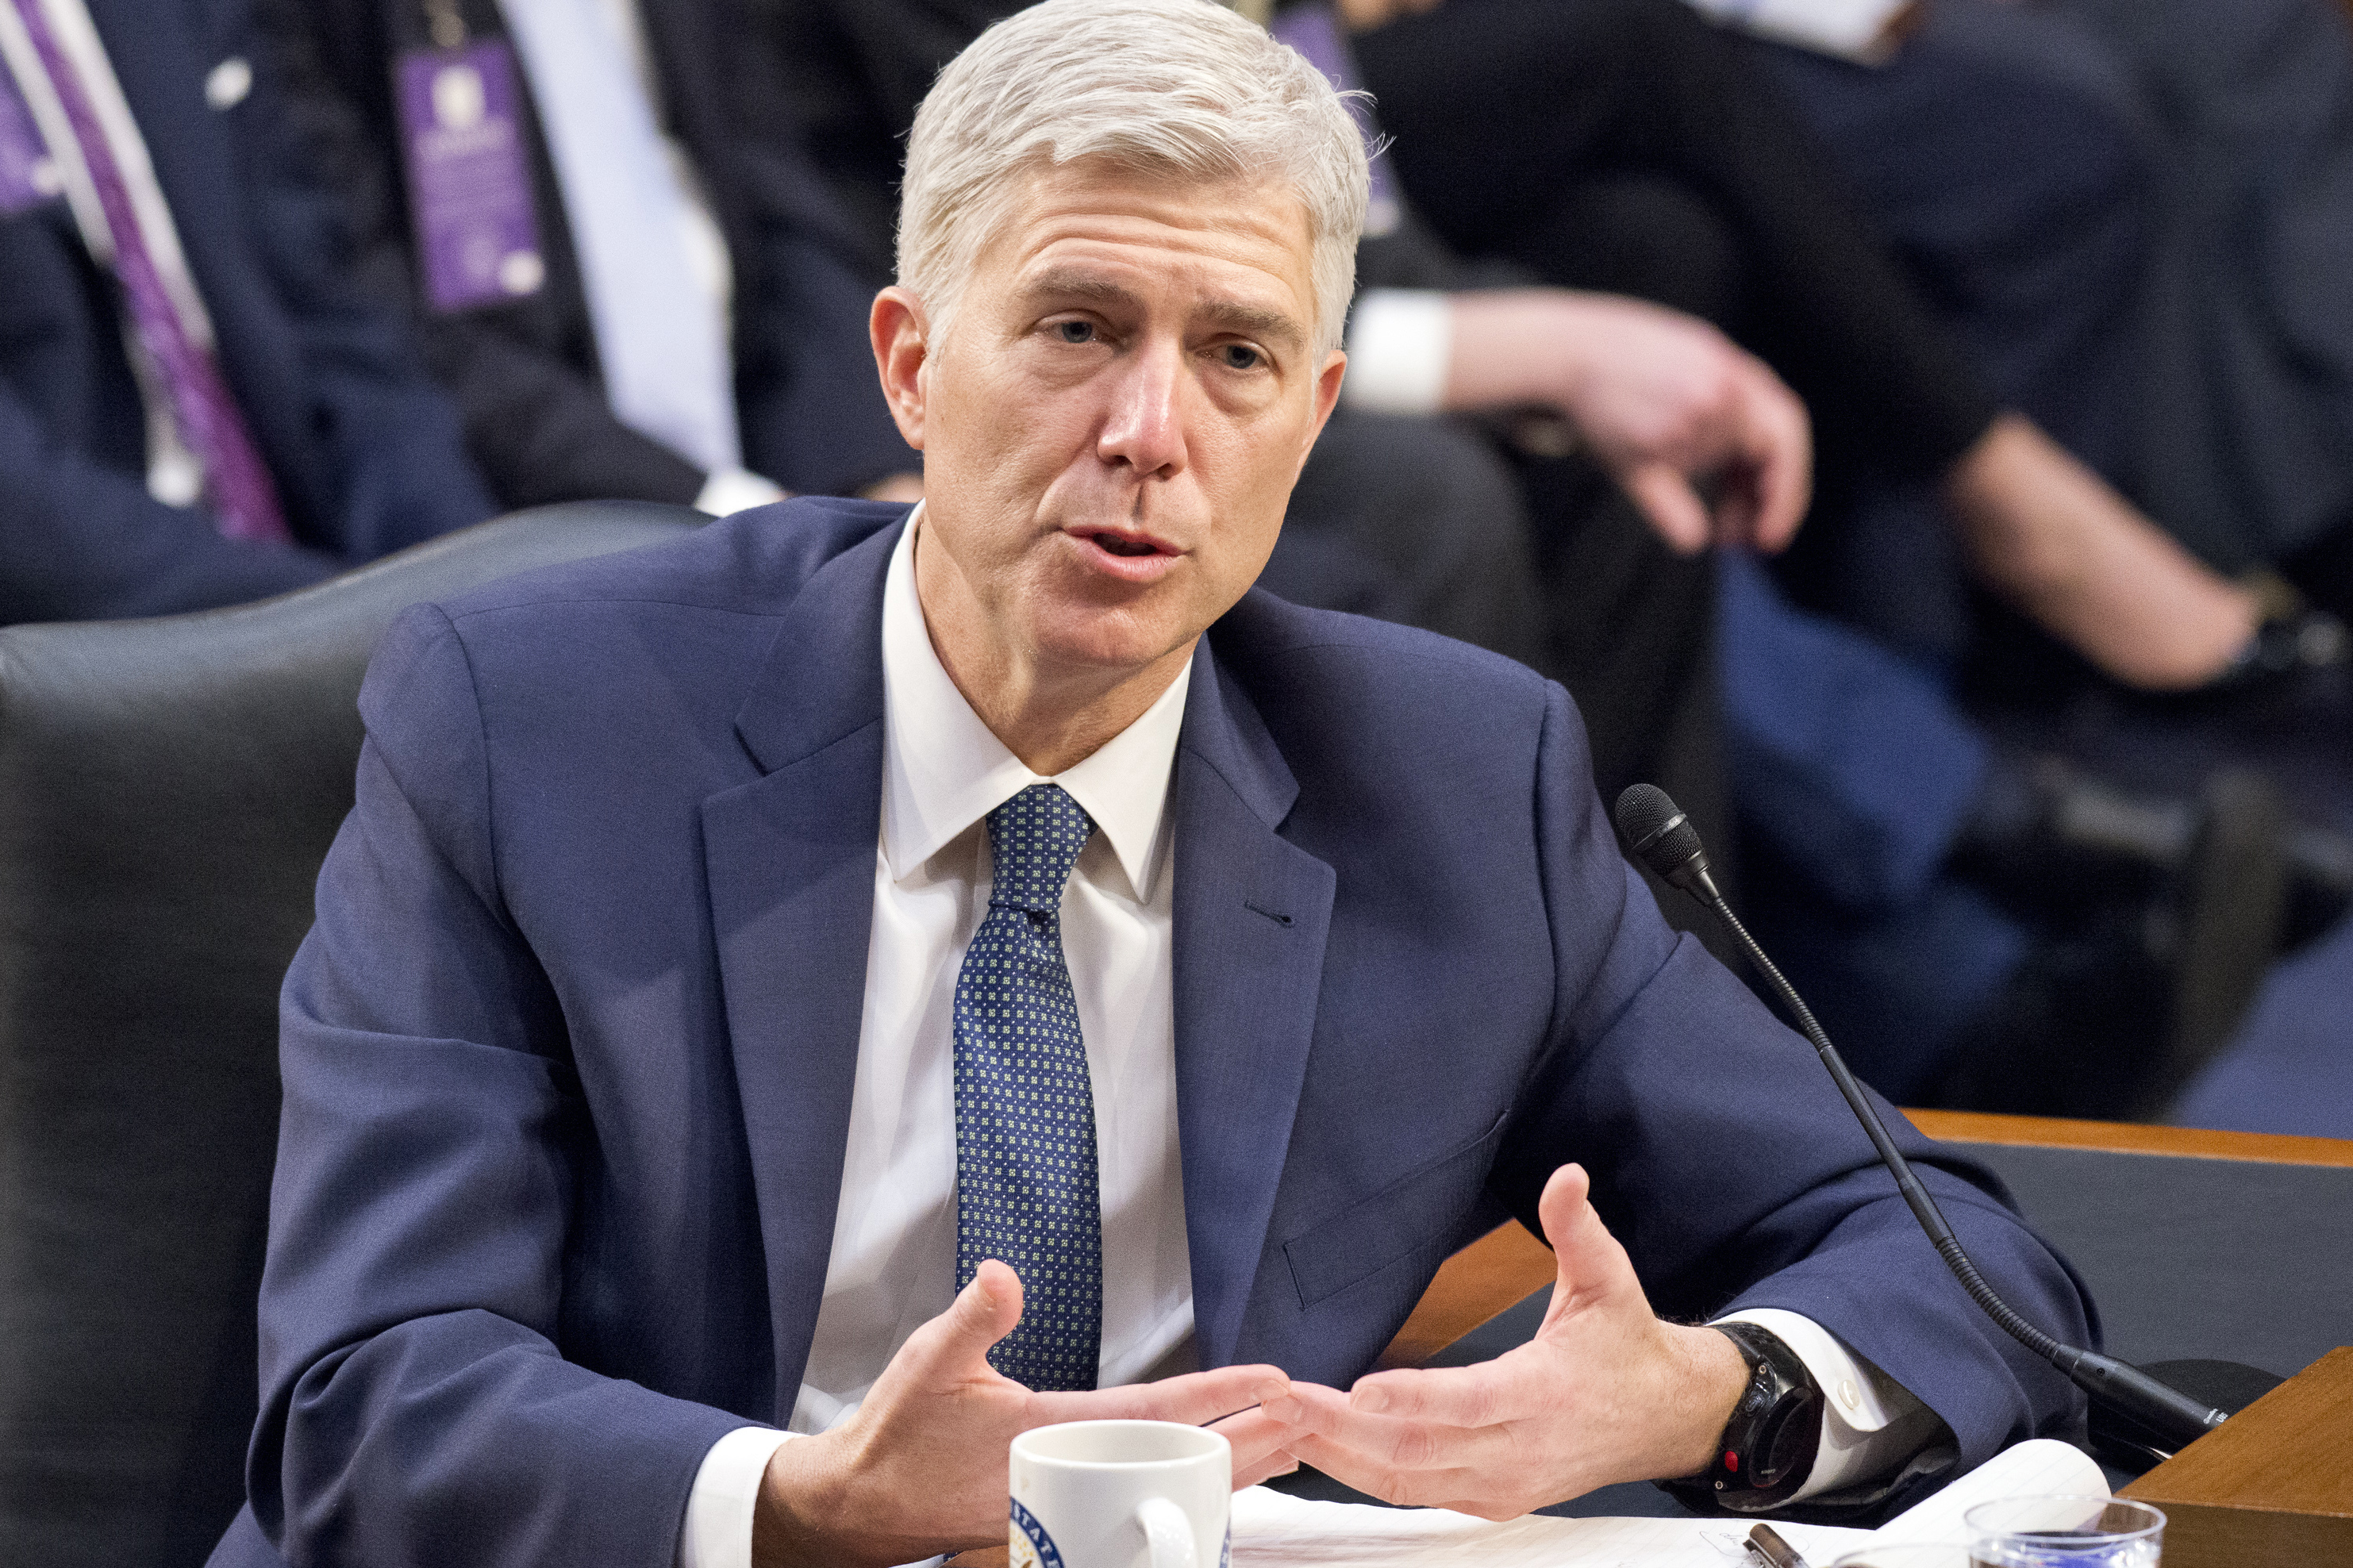 Neil Gorsuch testifies before the United States Senate Judiciary Committee on his nomination as Associate Justice of the US Supreme Court to replace the late Justice Antonin Scalia on Capitol Hill in Washington, D.C., on March 22, 2017.